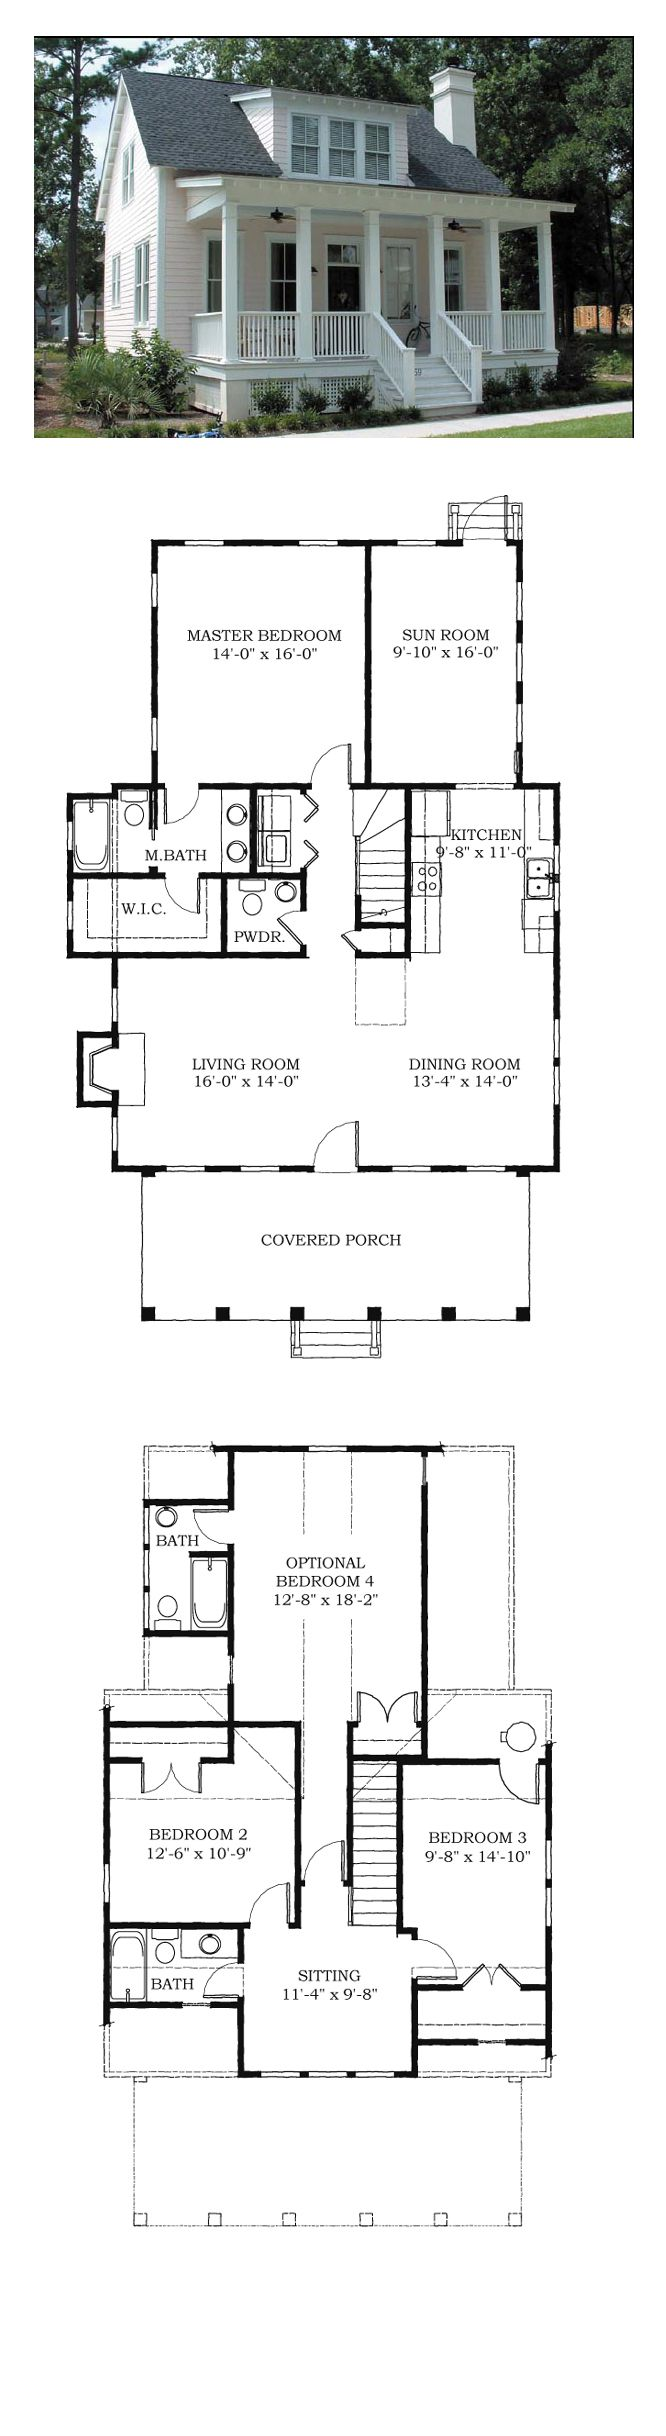 retirement home design. COOL House Plan ID  chp 38703 Total Living Area 1783 sq Best 25 Retirement house plans ideas on Pinterest Cottage